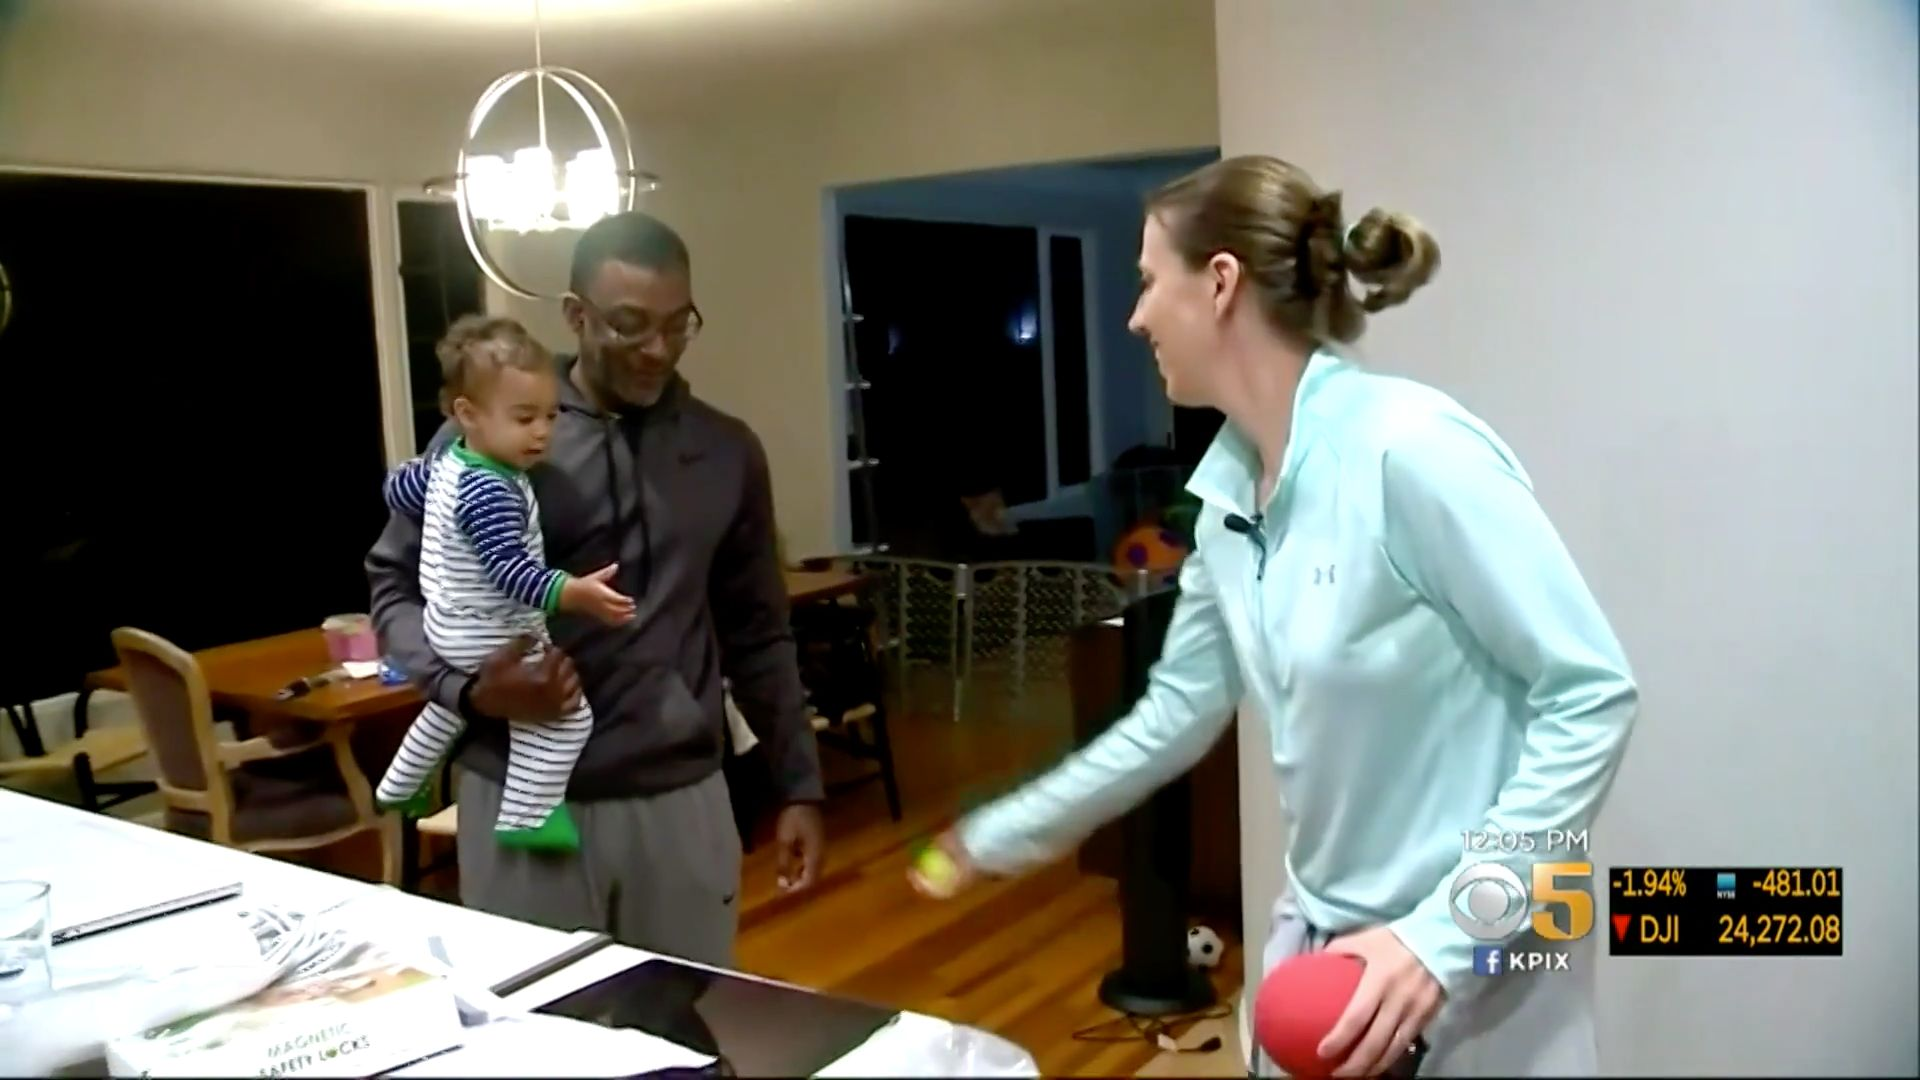 Lindsay Gottlieb is seen playing with her 1-year-old son who is biracial